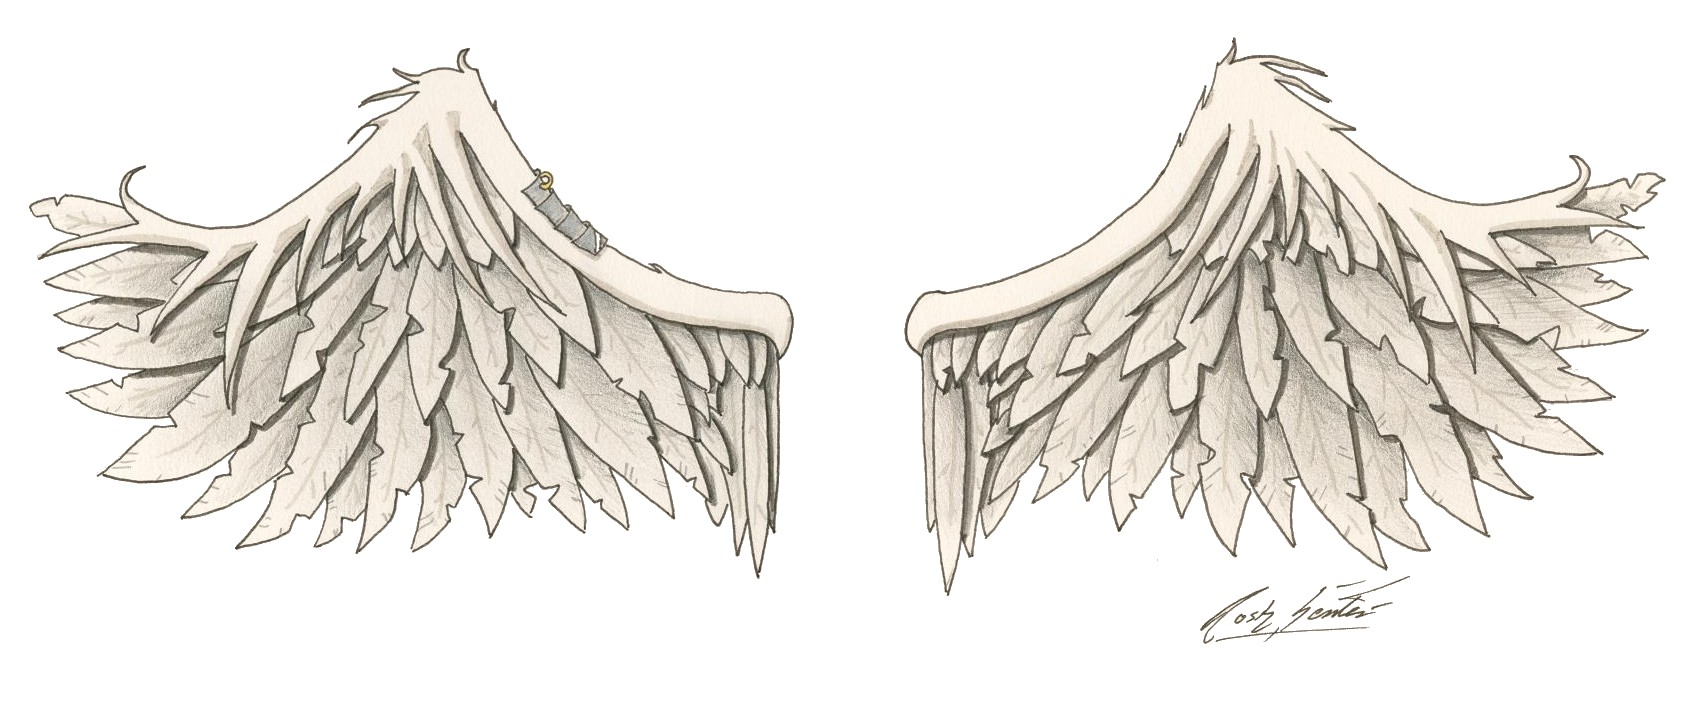 Wing tattoo design - Wing Tattoo Design By Jasflip Wing Tattoo Design By Jasflip